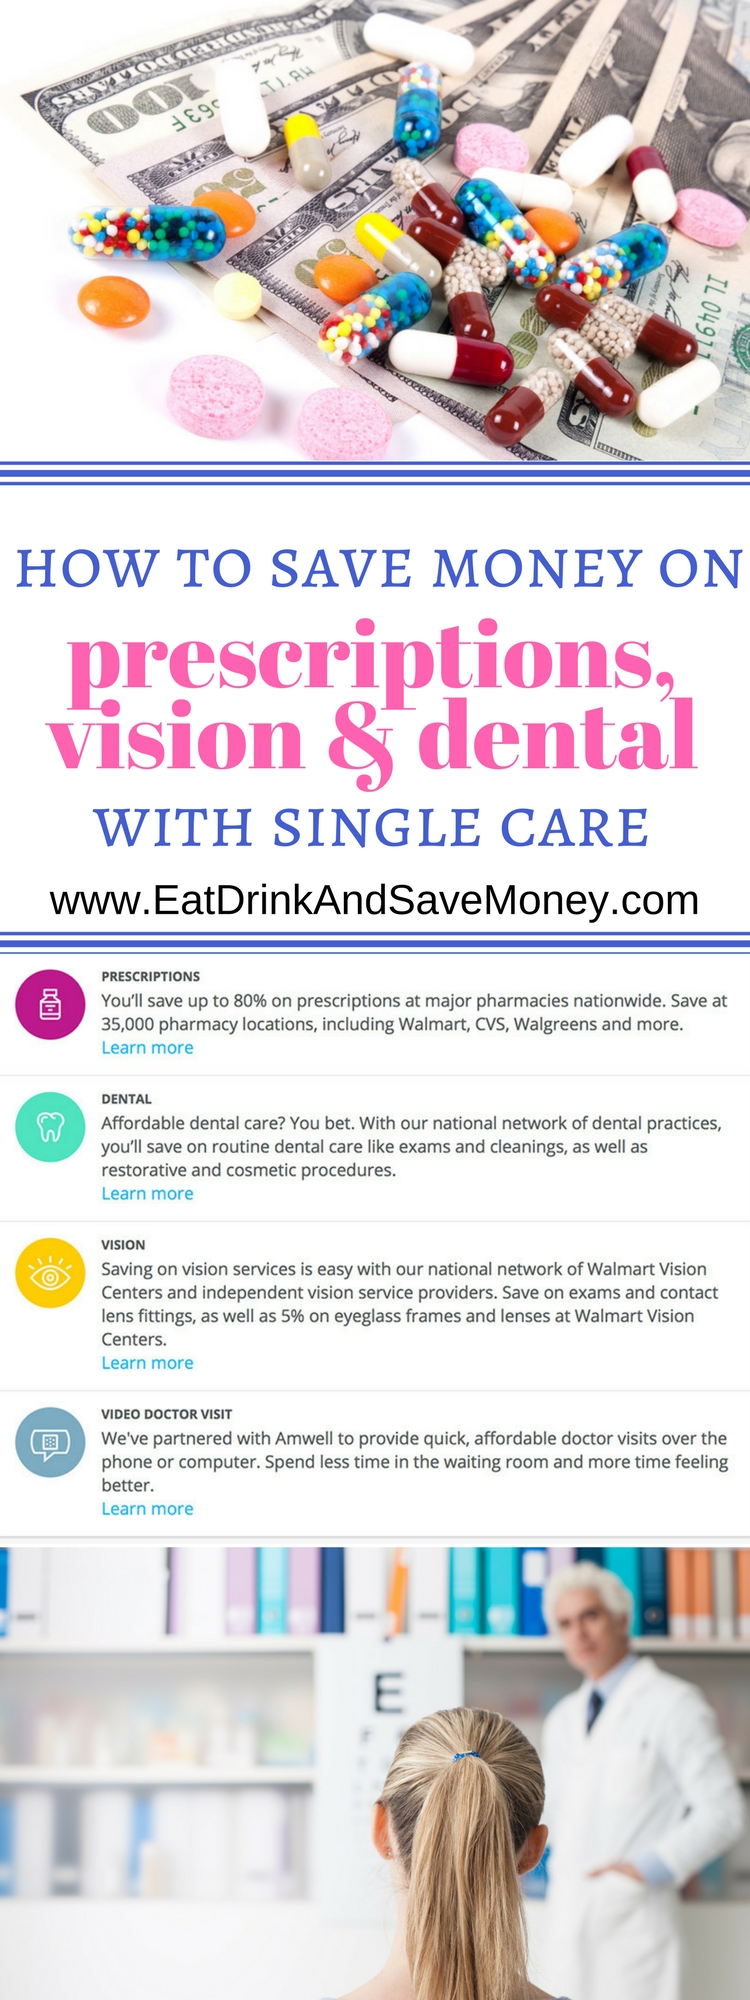 How to save money on prescriptions, vision, & dental with single care